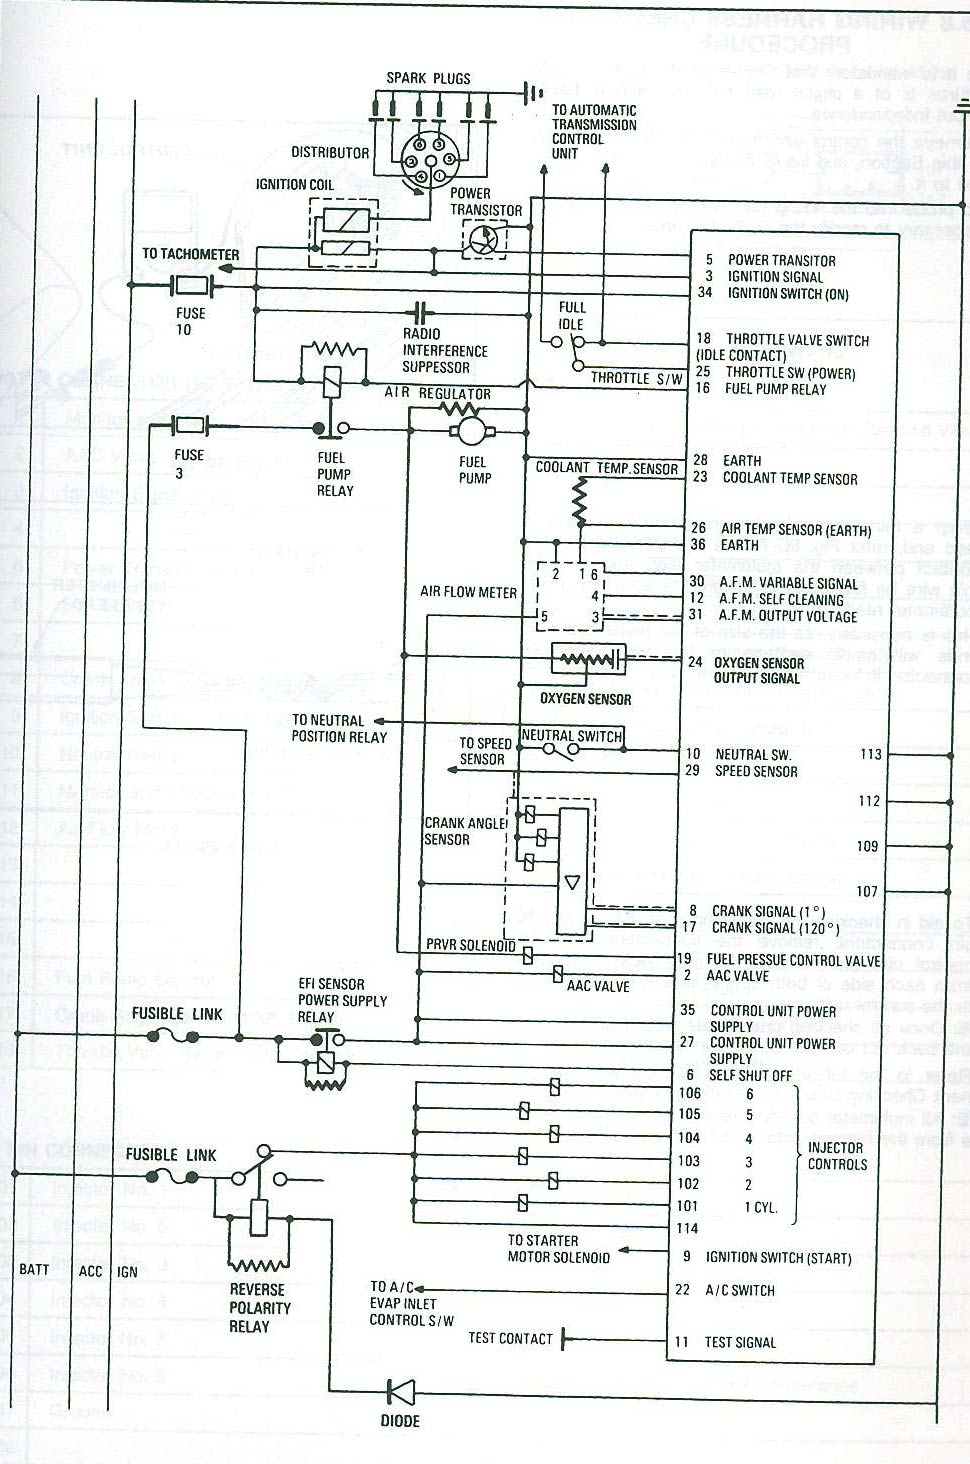 ecuwiring vl commodore wiring diagram vn commodore \u2022 wiring diagrams j vy commodore power window wiring diagram at mifinder.co